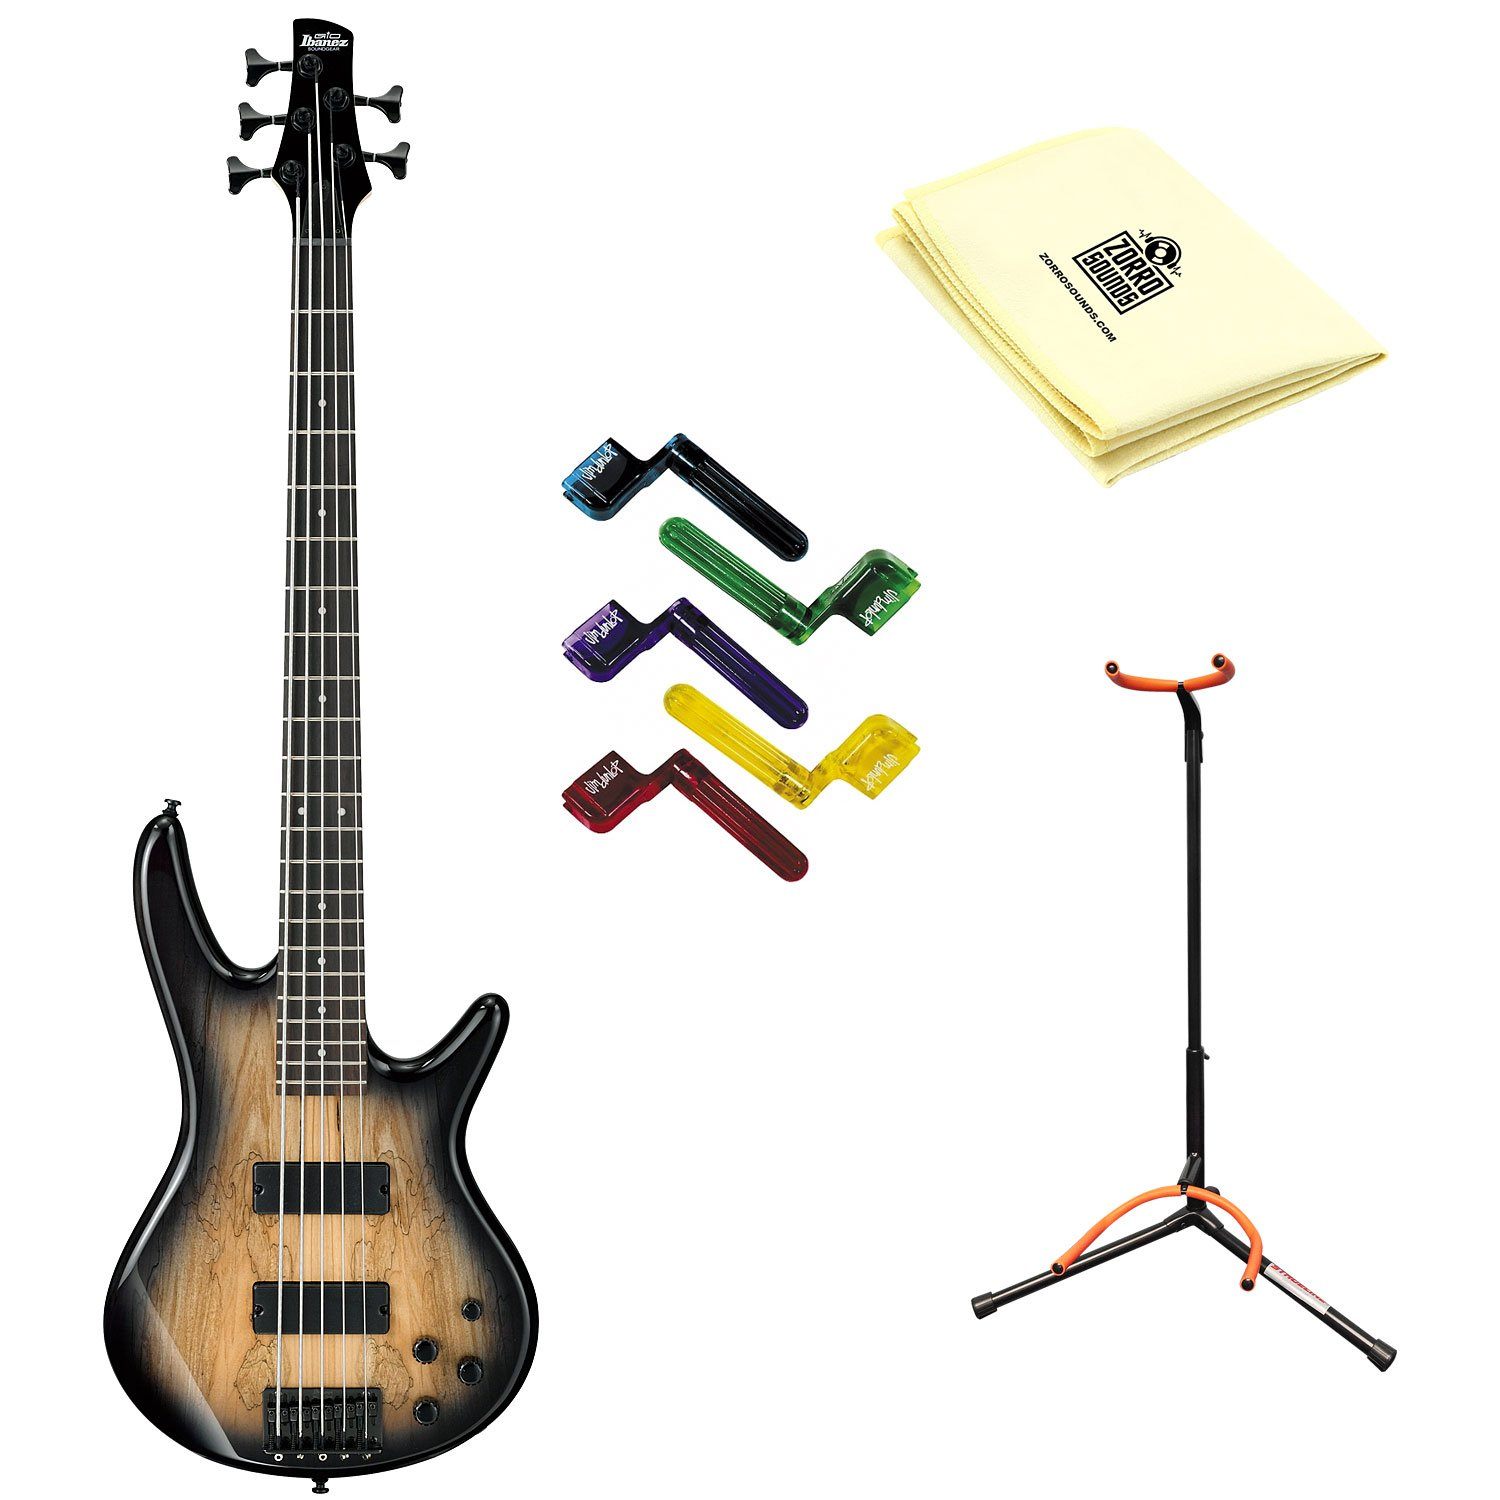 Ibanez GSR205SM 5-String Electric Bass Guitar in Natural Gray Burst With Polishing Cloth, Stand, and Pegwinders